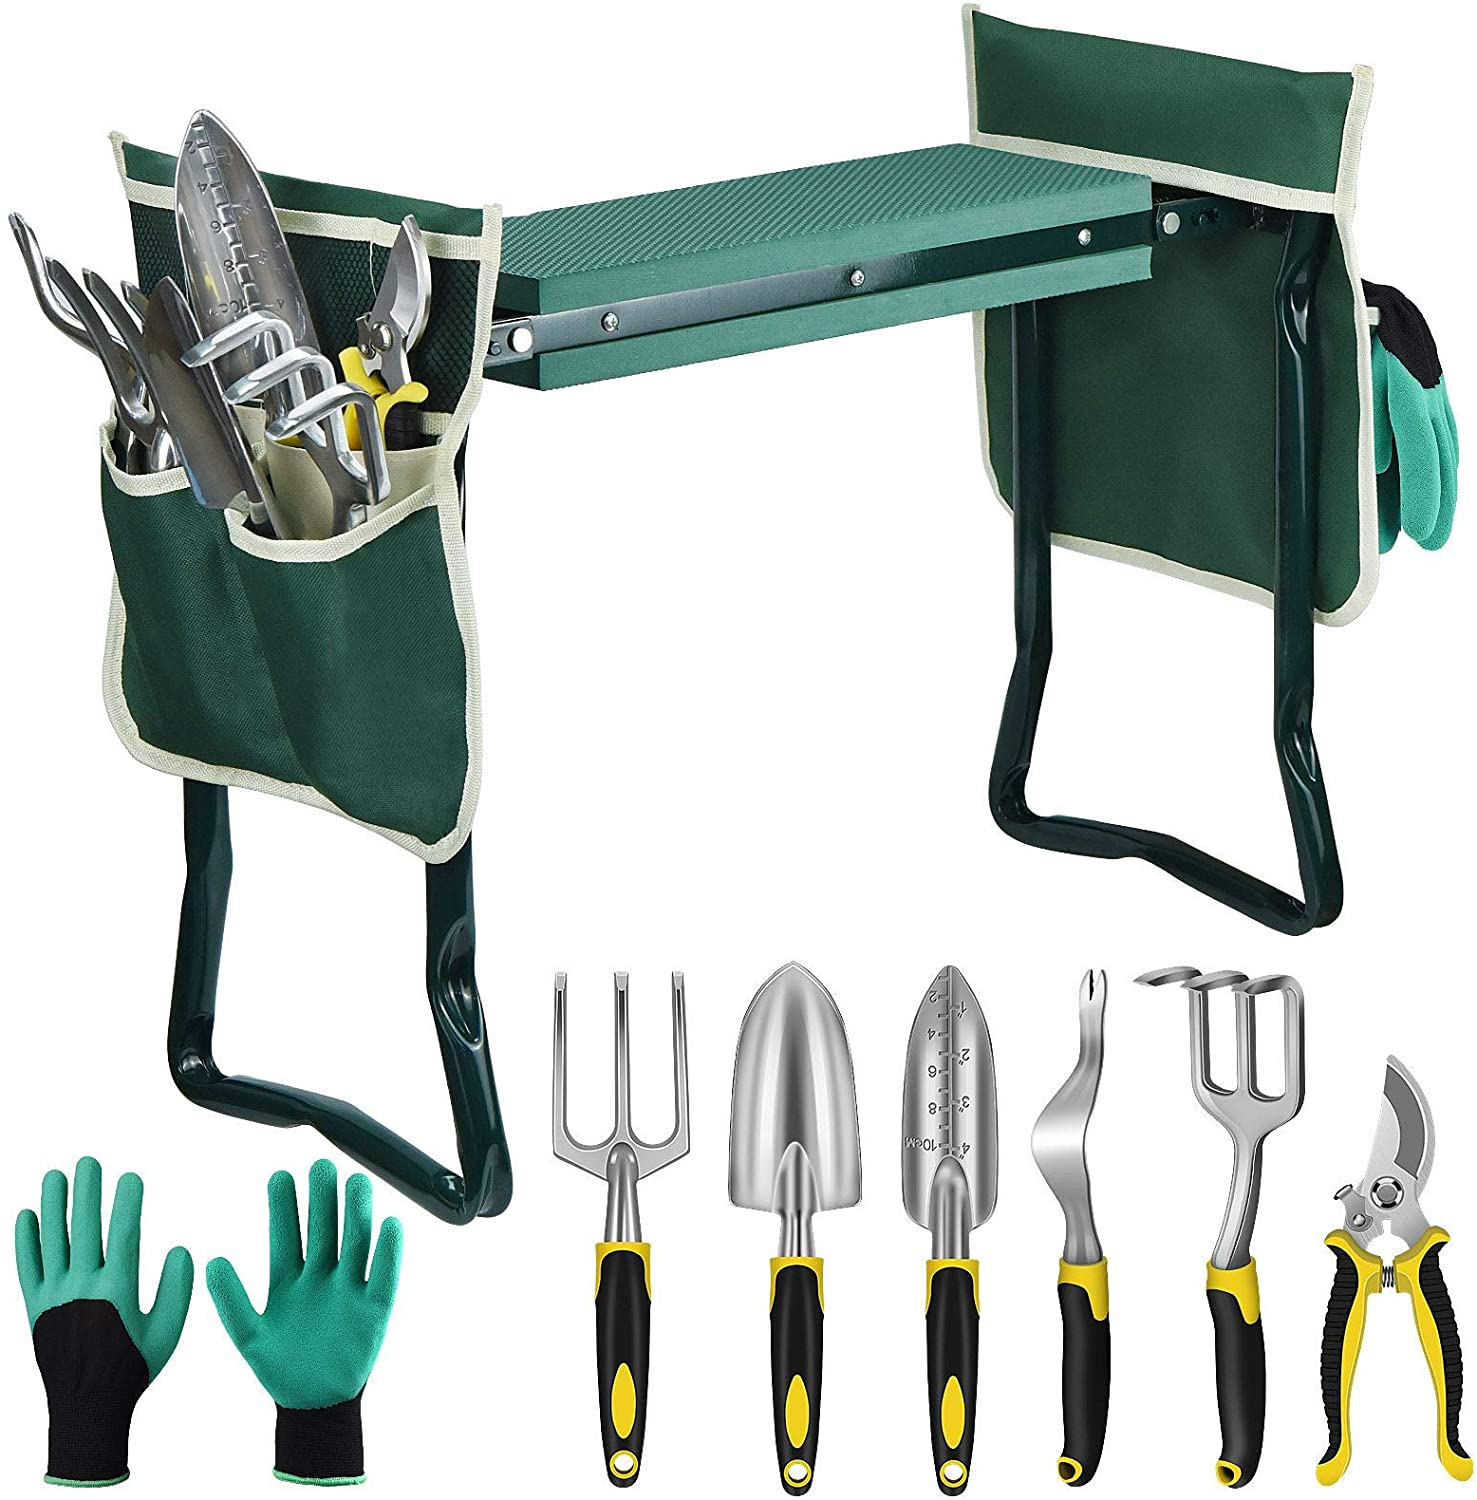 EAONE Garden Kneeler and Seat Foldable Garden Bench Stool with Soft Kneeling Pad, 6 Garden Tools, Tool Pouches and Gardening Glove for Women Mother's Day Gardening Gifts, Protecting Your Knees & Hands